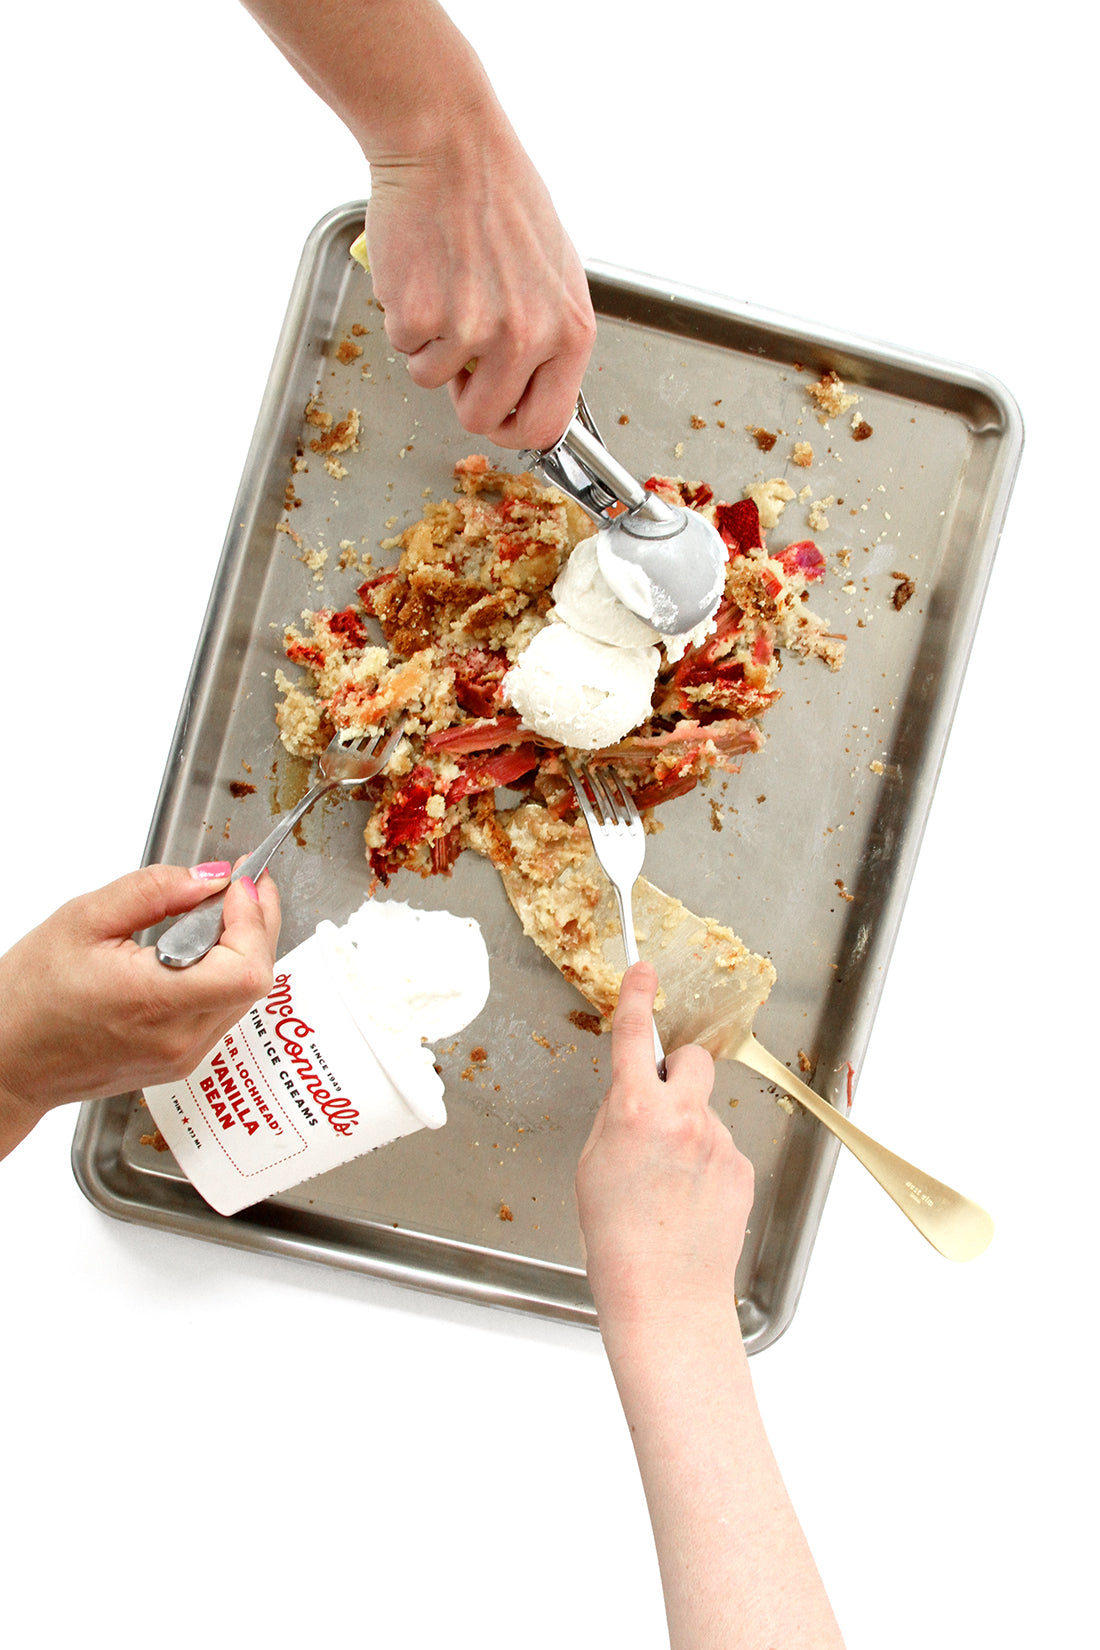 Image from above of crushed Miss Jones Baking Co Summer Strawberry + Rhubarb Tart on a baking sheet next to a container of McConnell's Vanilla Bean Ice cream